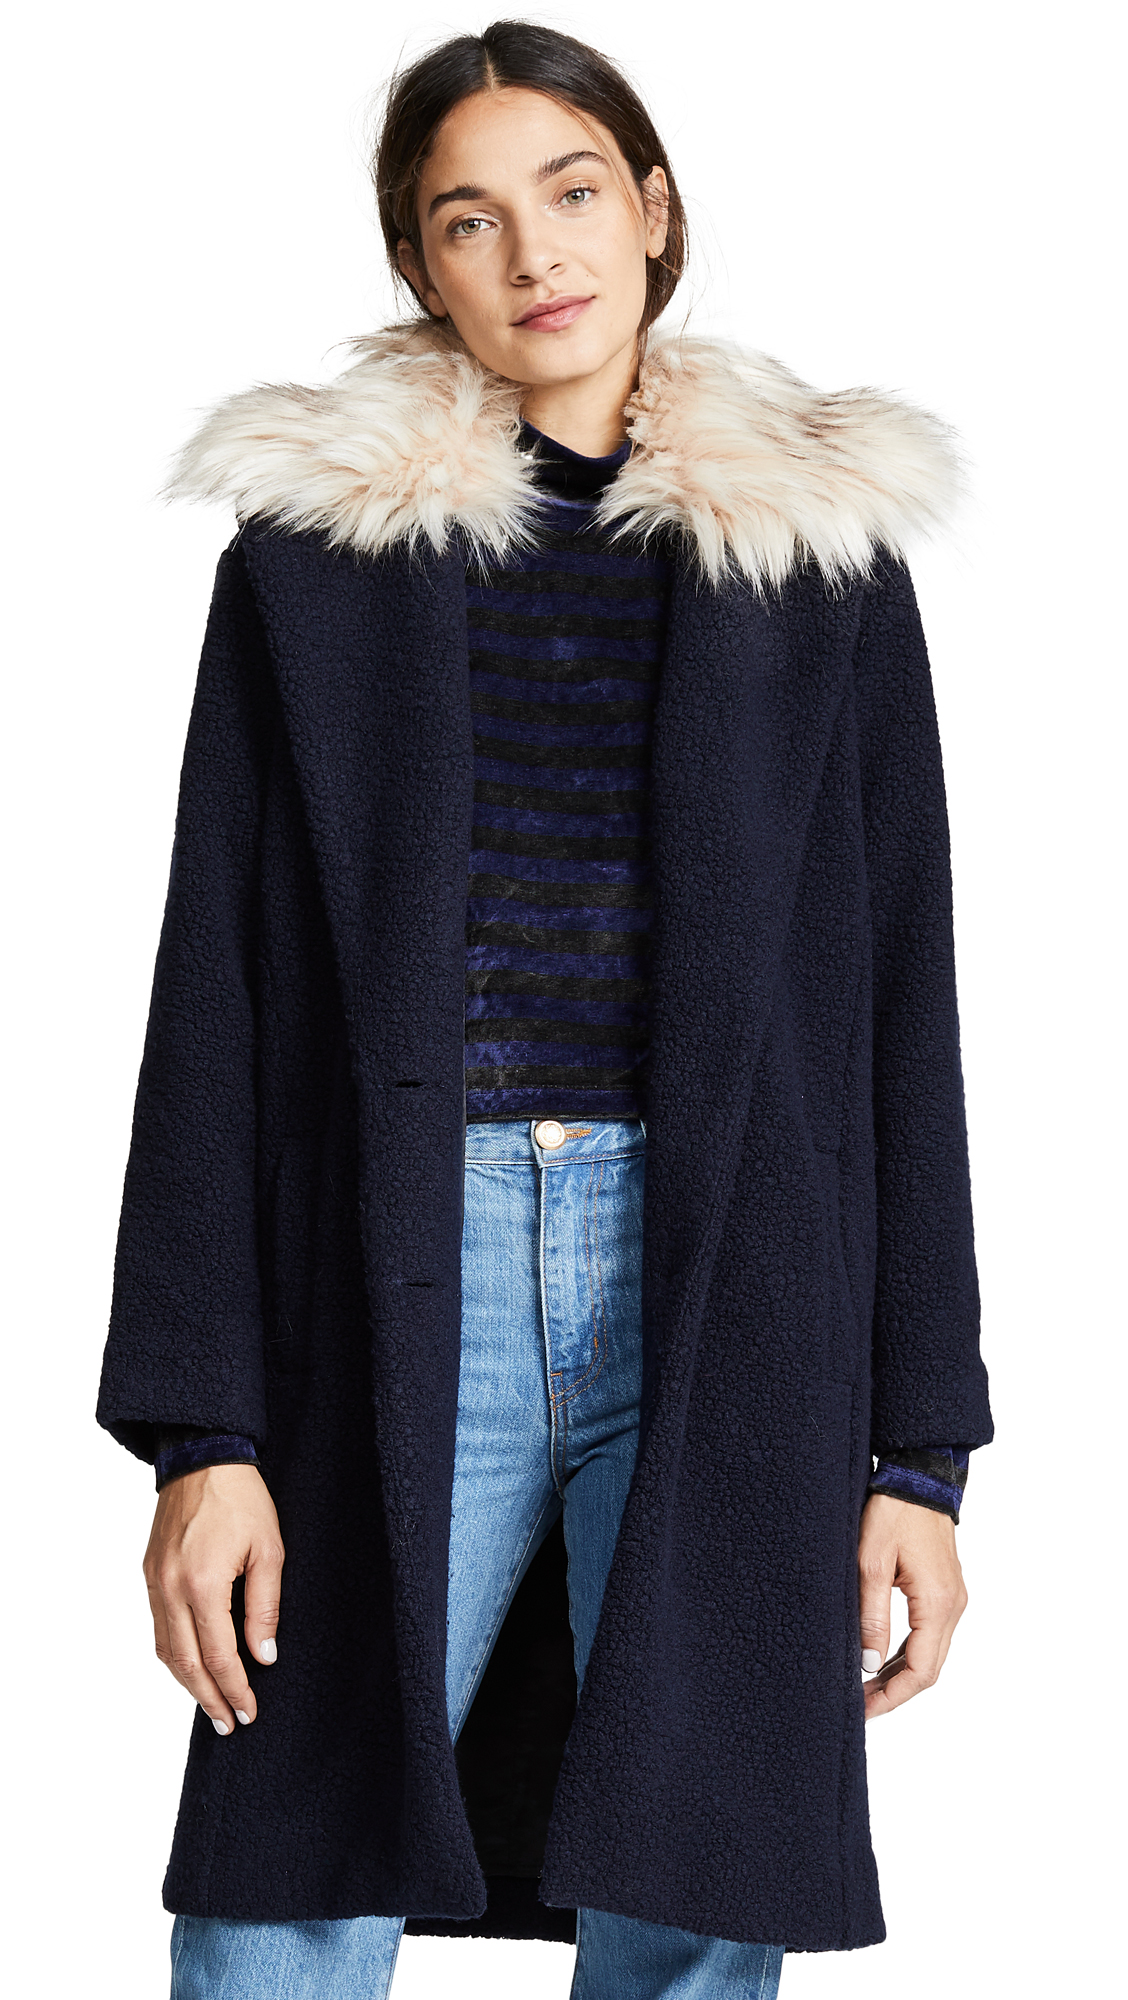 ei8htdreams Nubby Wool Oversized Coat with Detachable Collar In Midnight Blue